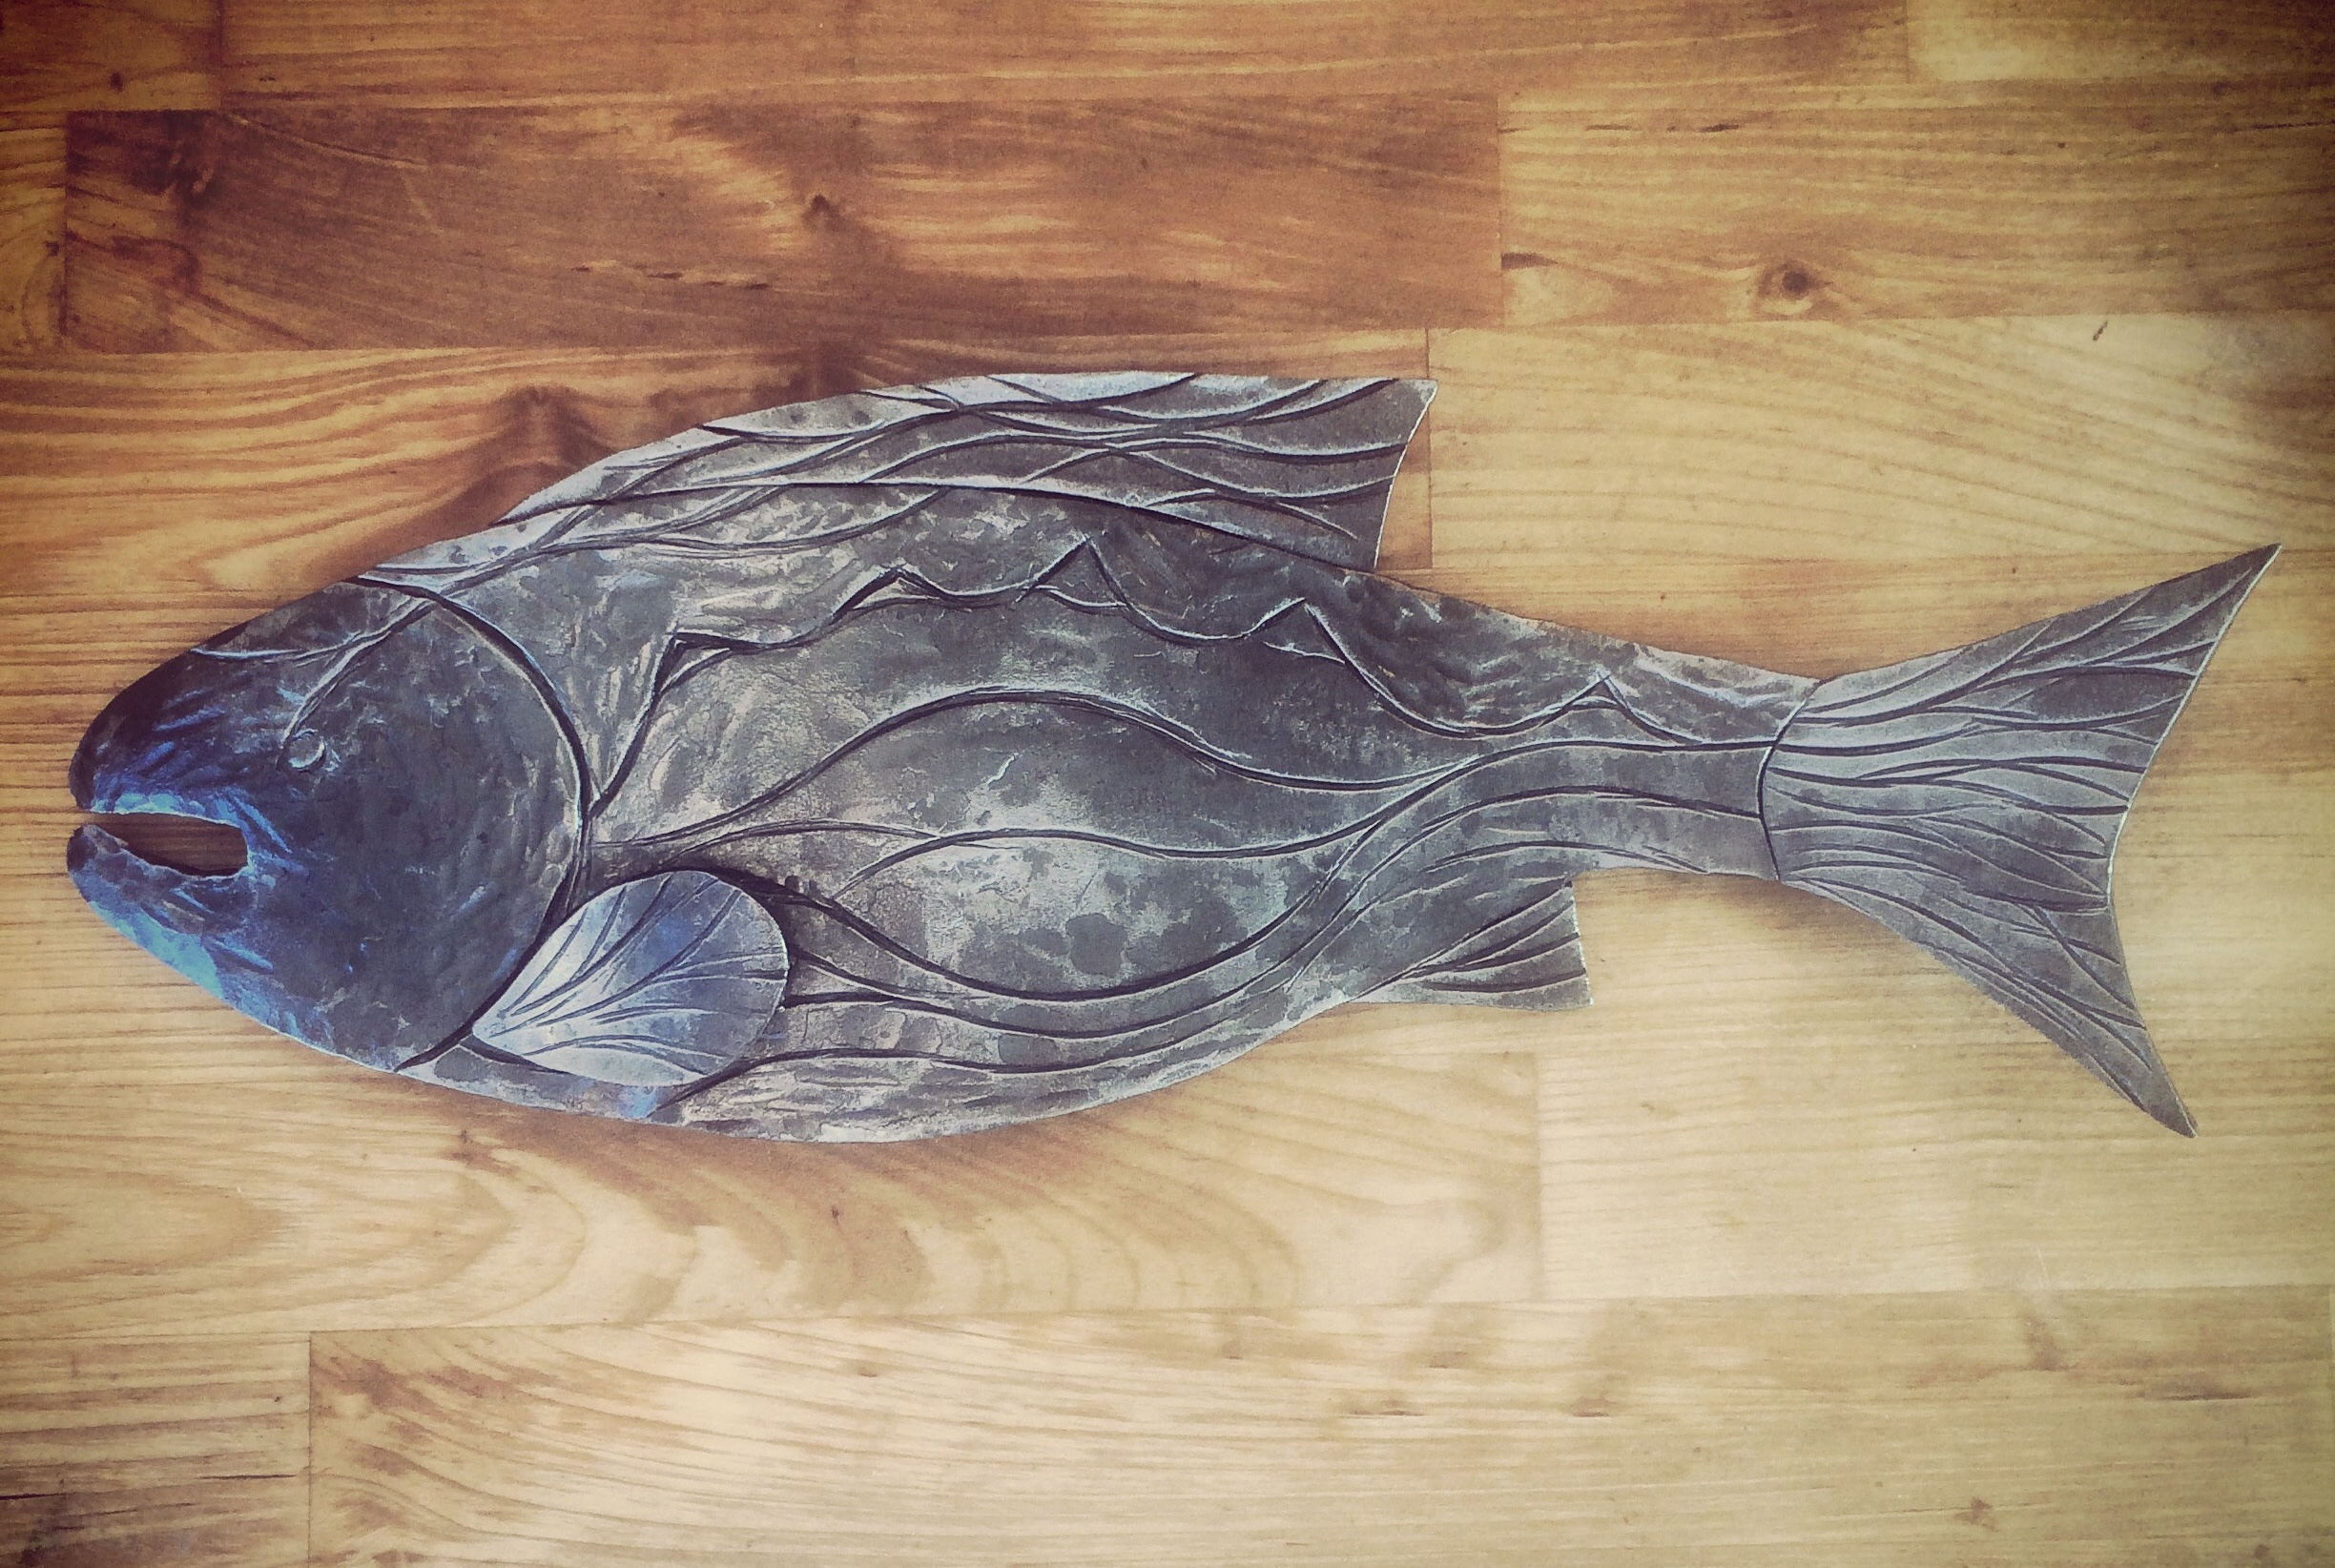 Forged fish